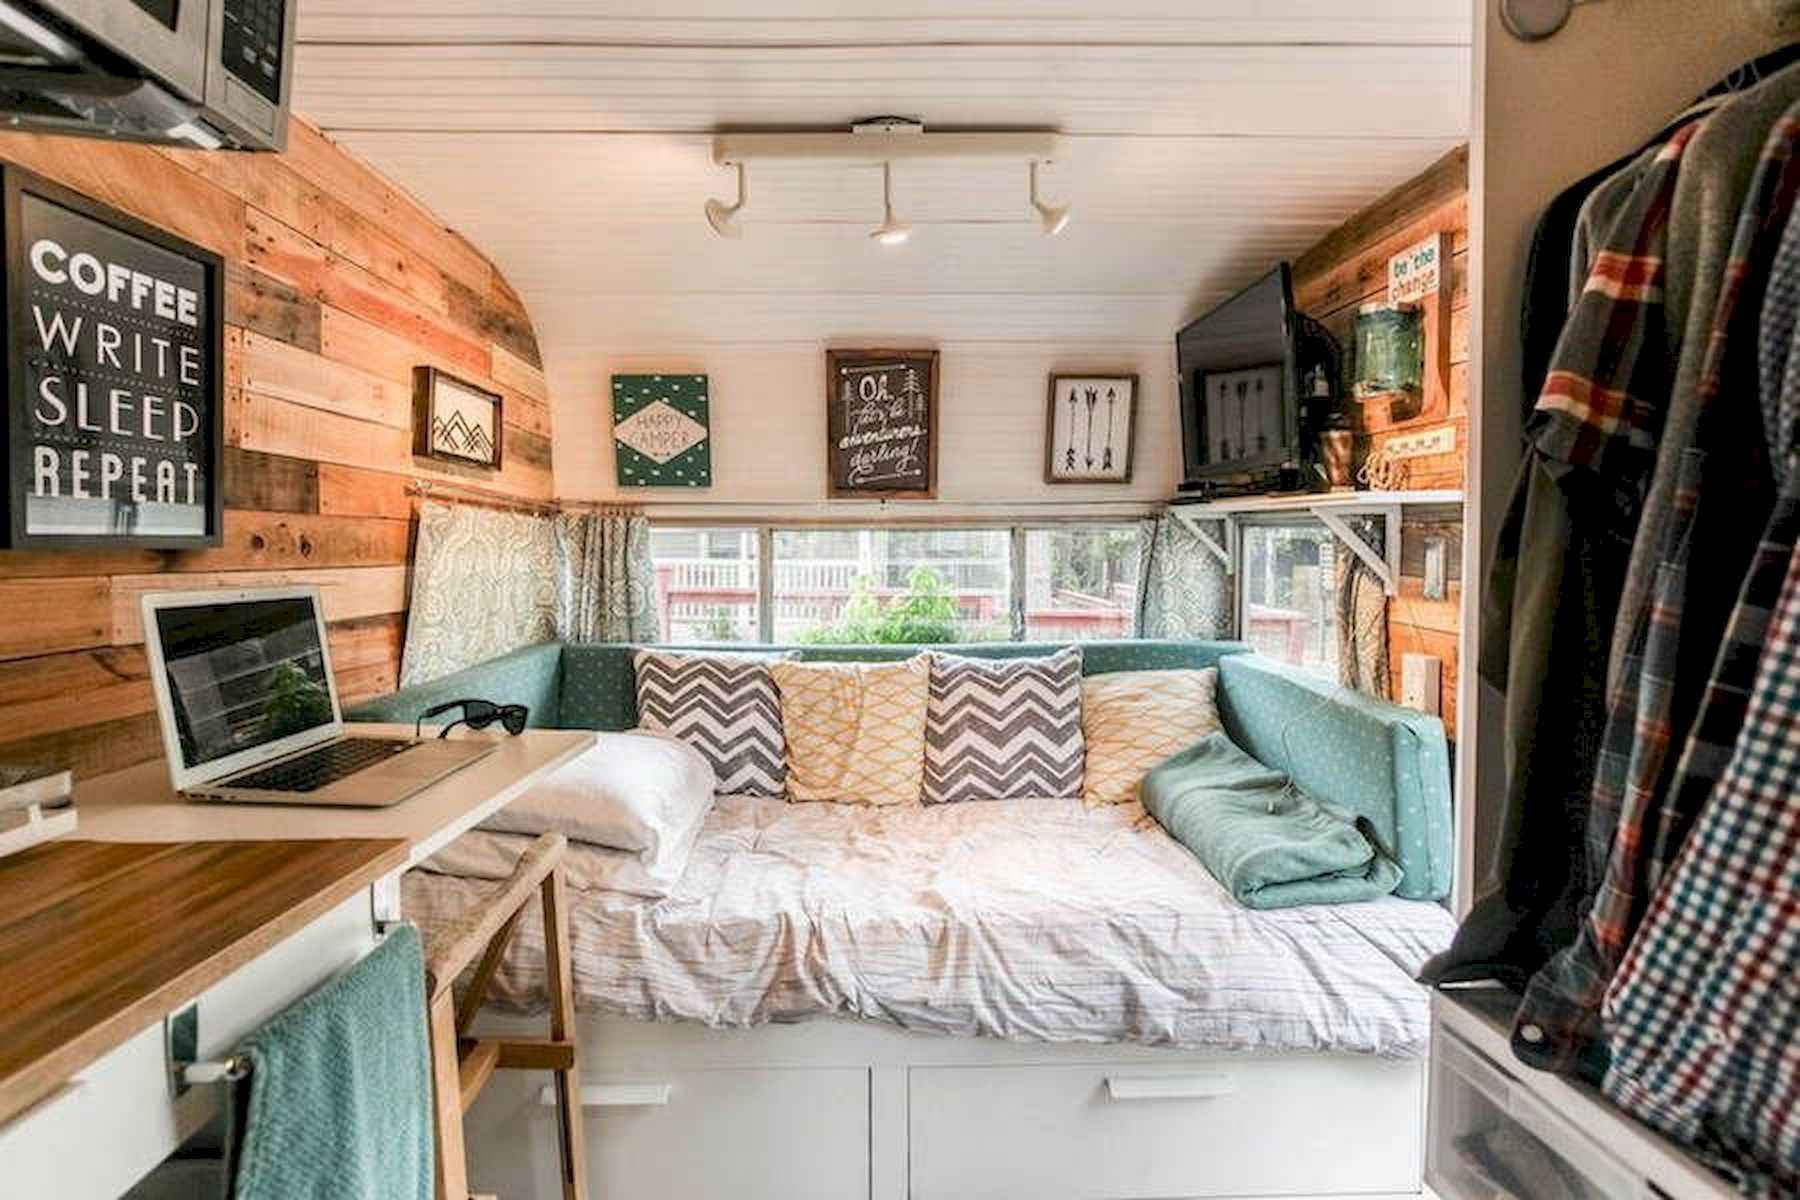 70 Stunning RV Living Camper Room Ideas Decorations Make Your Summer Awesome (69)